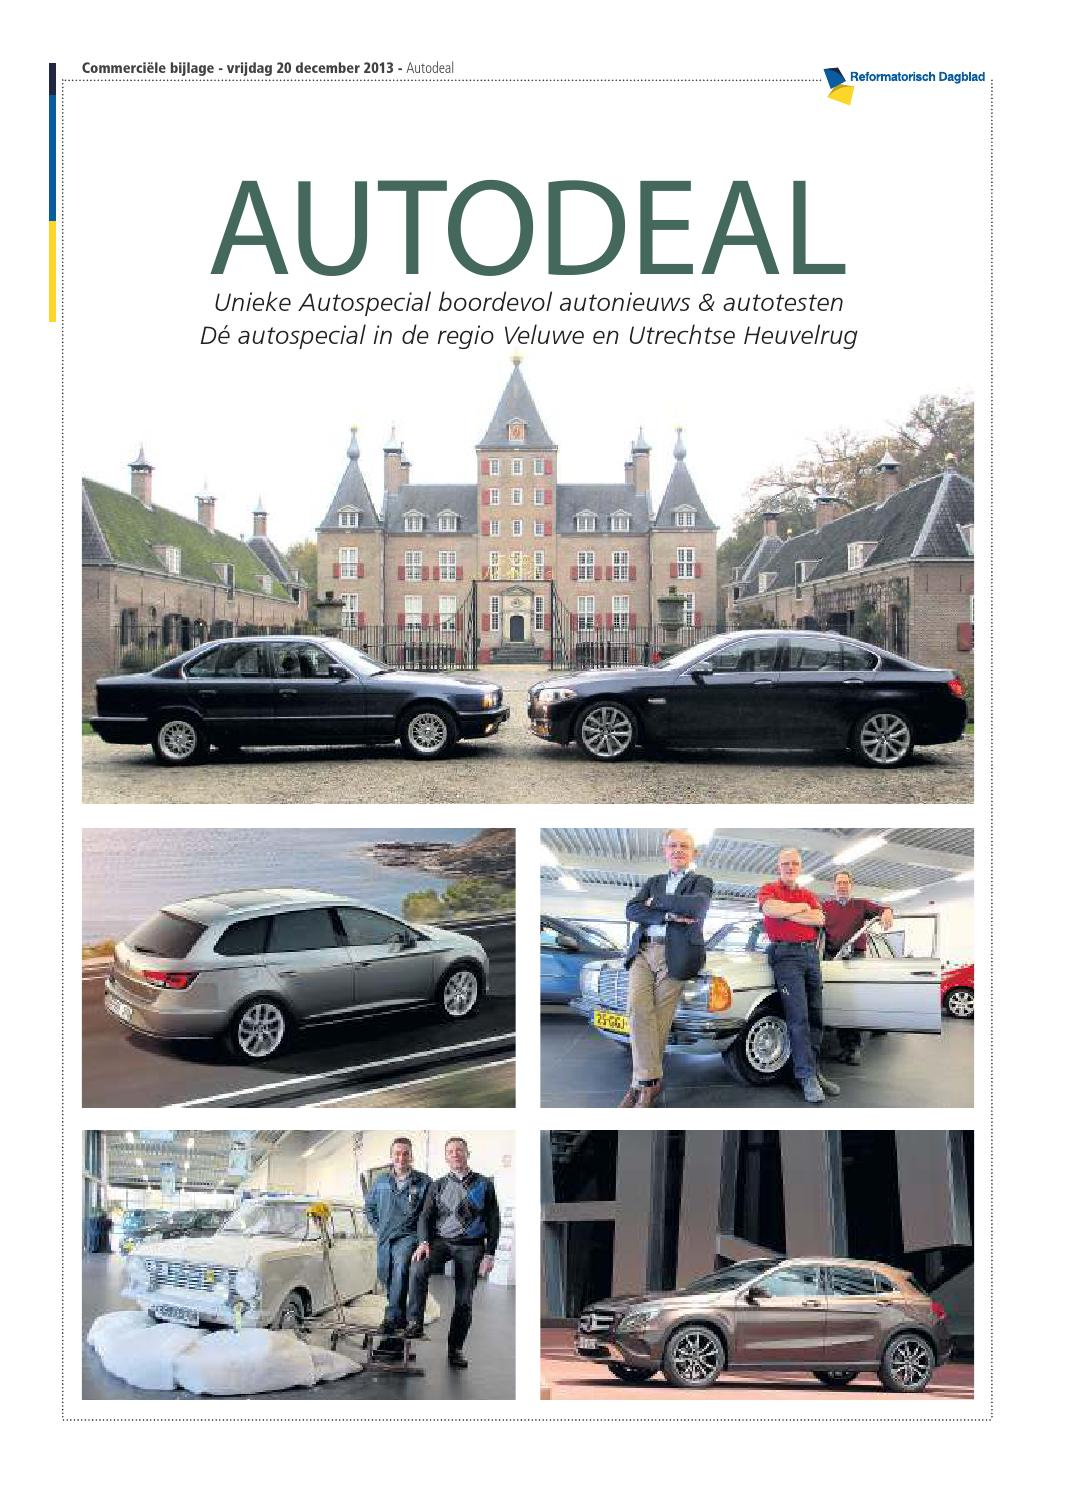 Versteeg Buurman Autodeal Stramien By Erdee Media Groep Issuu